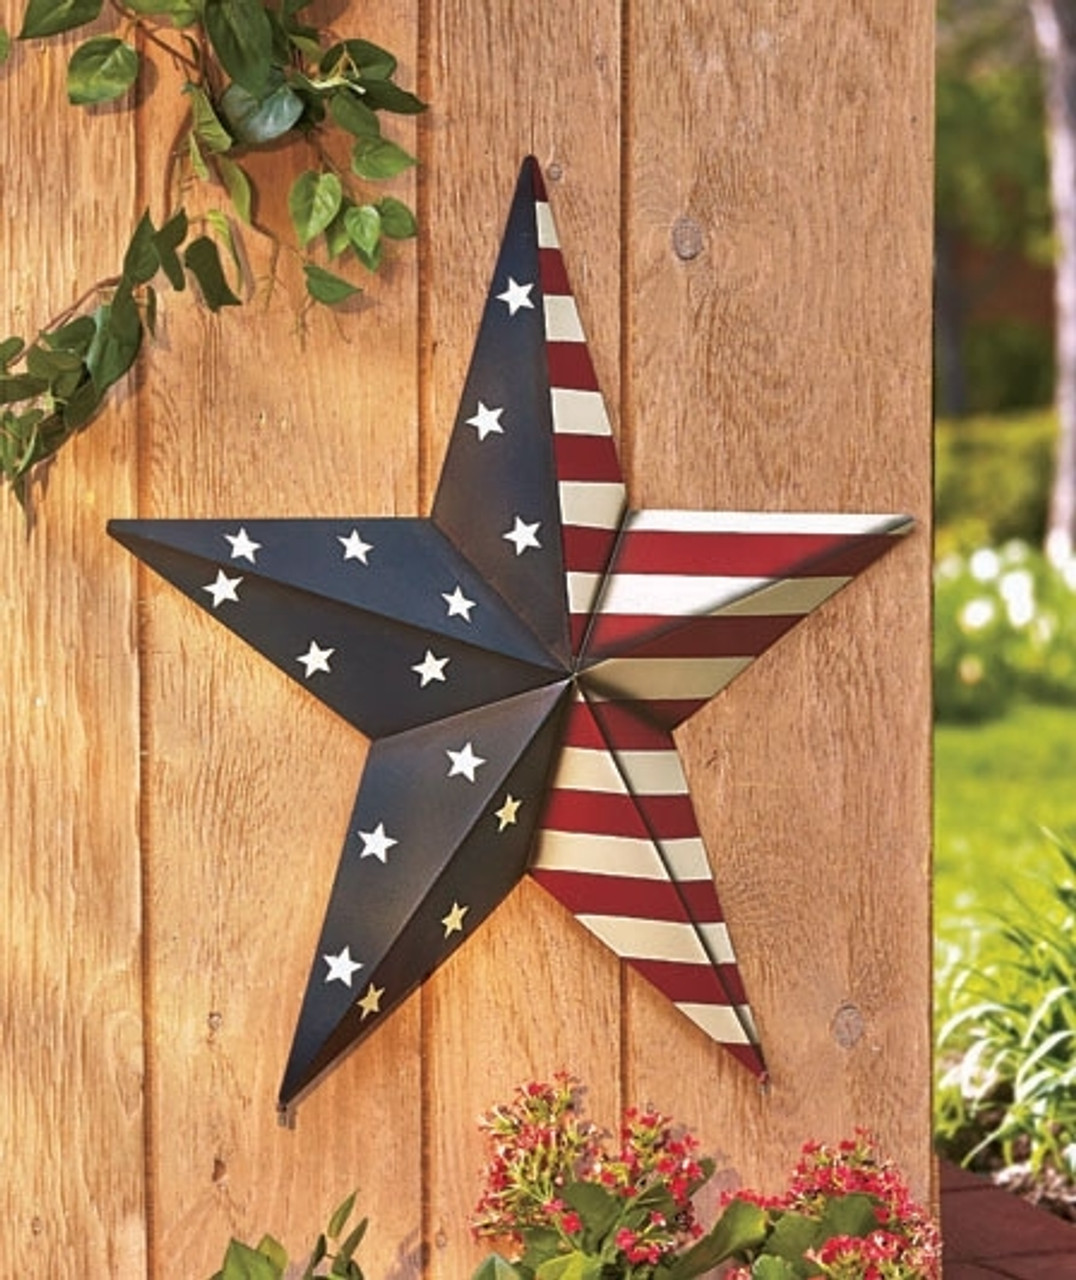 July 4th Patriotic Themed Decor & Gifts